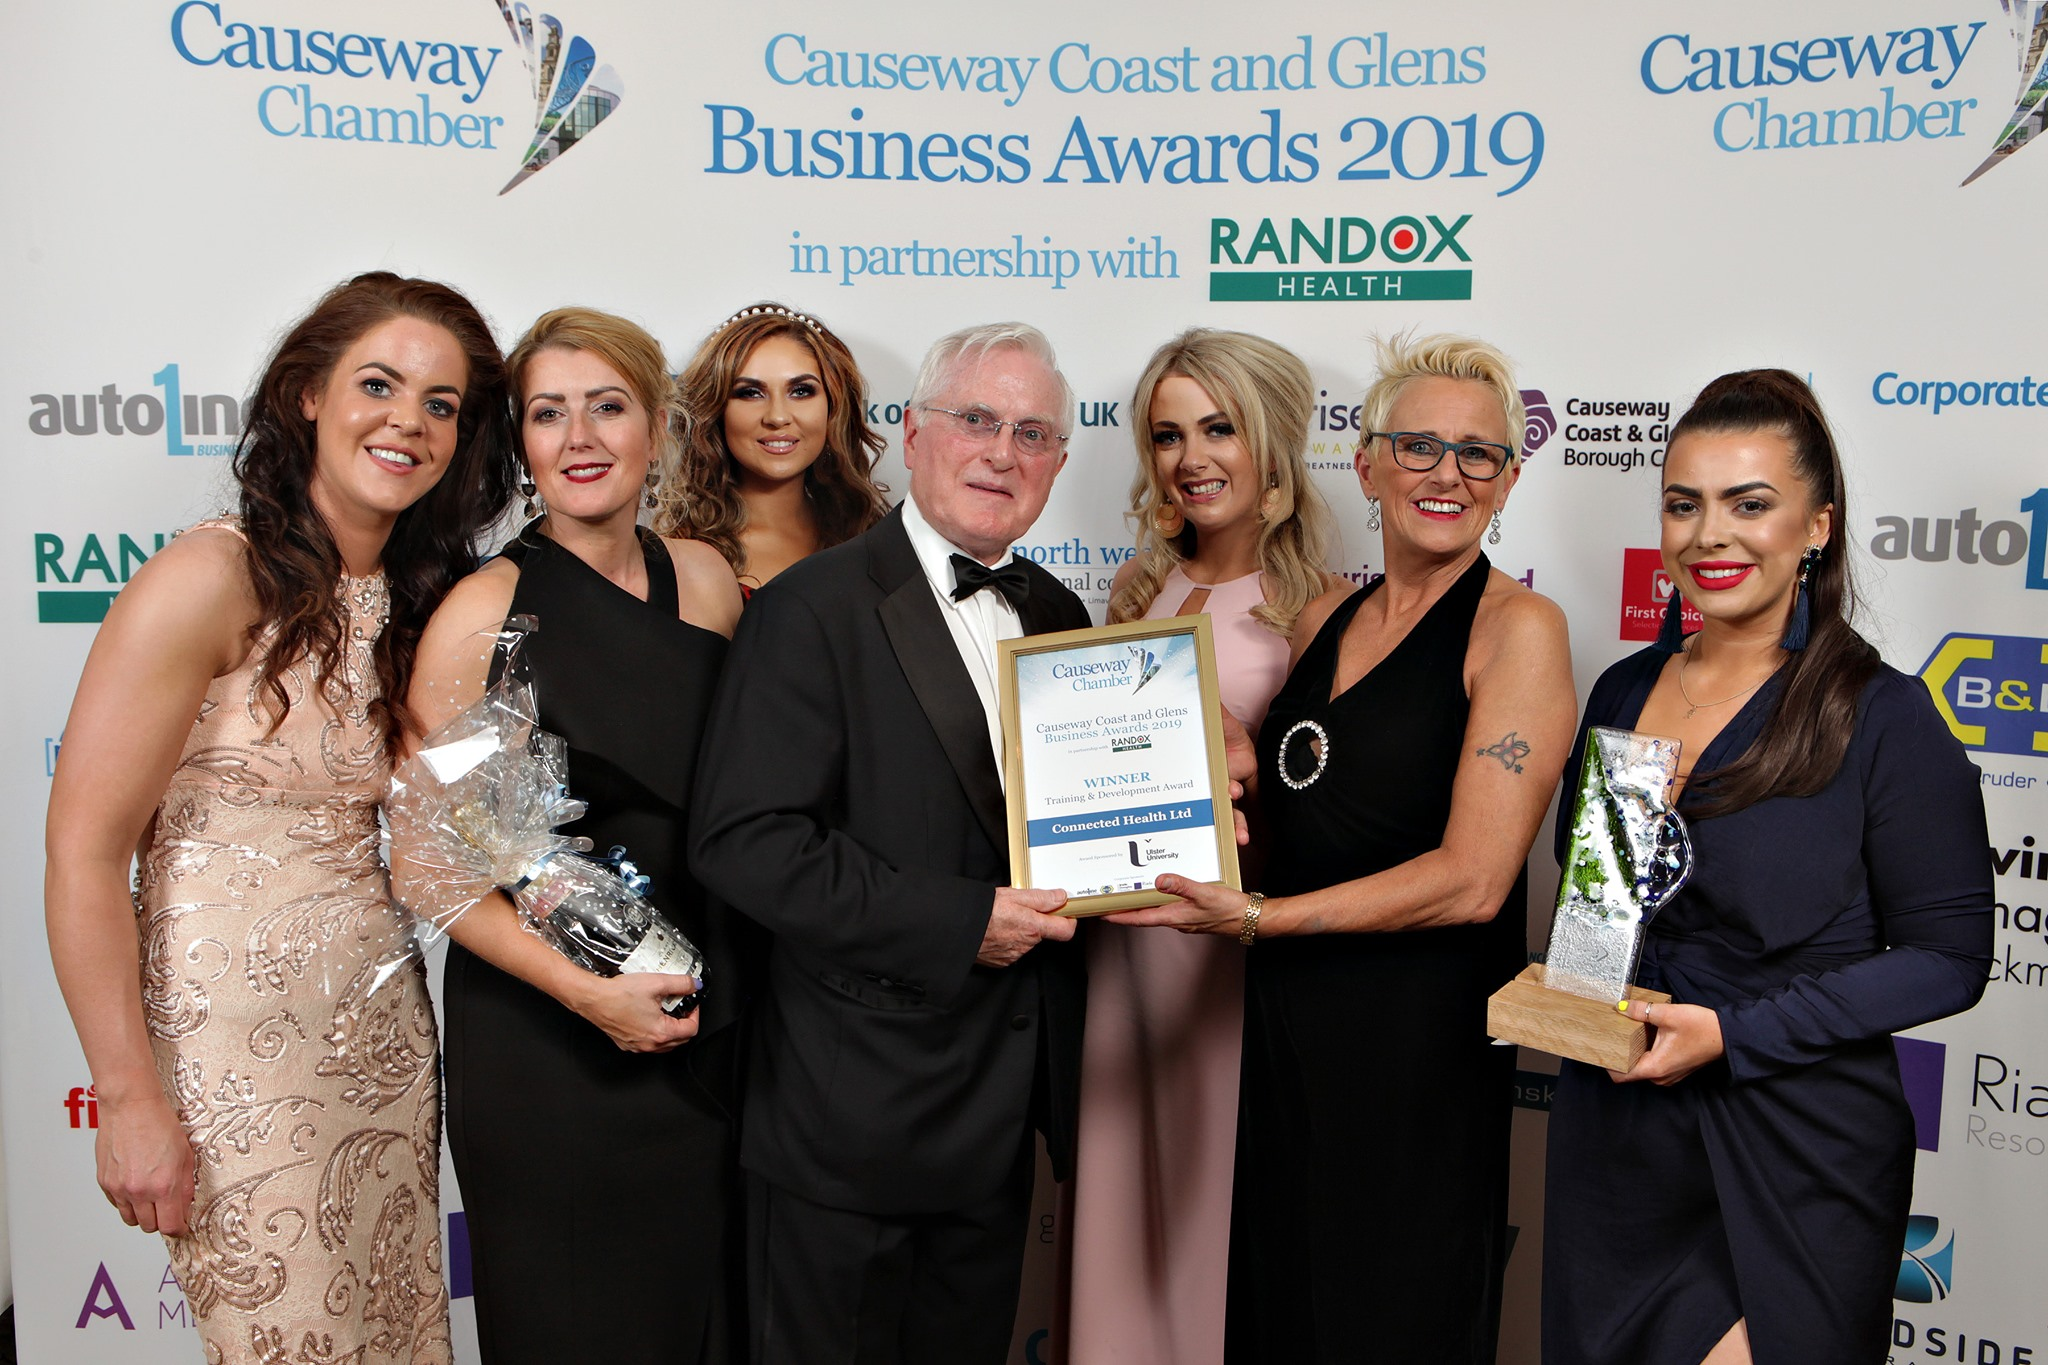 Connected Health staff celebrate winning the Training & Development Award at the recent Causeway Chamber 2019 Causeway Coast and Glens Business Awards